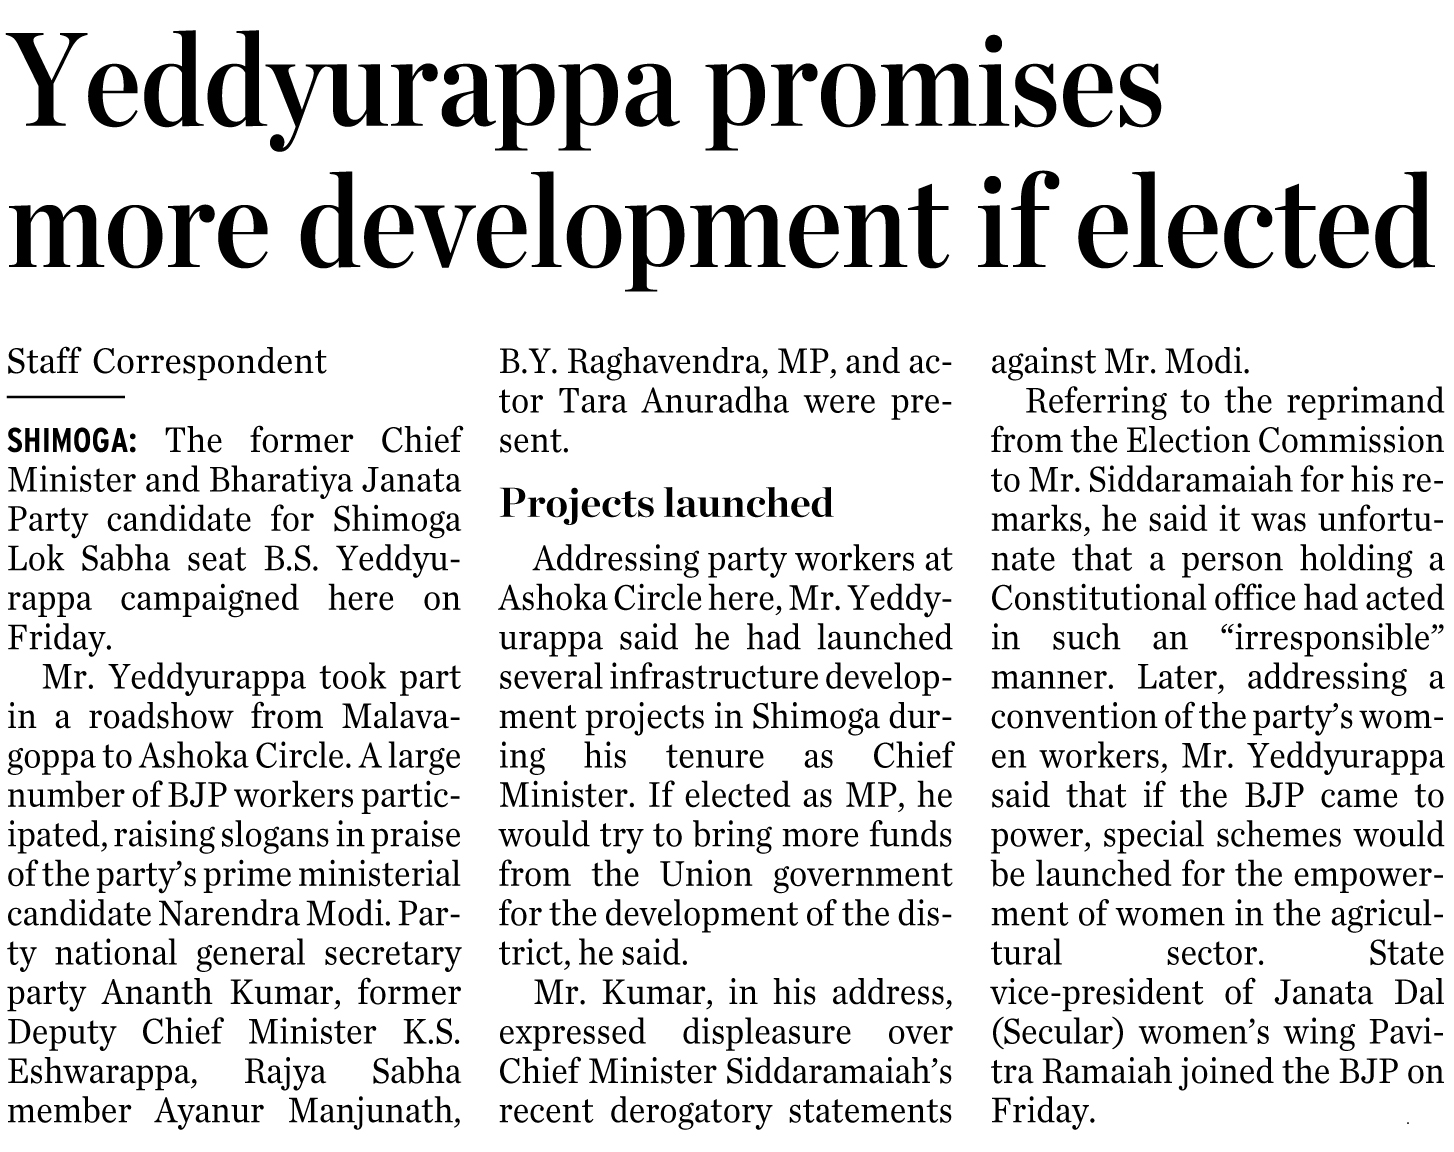 THE HINDU 12-04-2014 Page 6